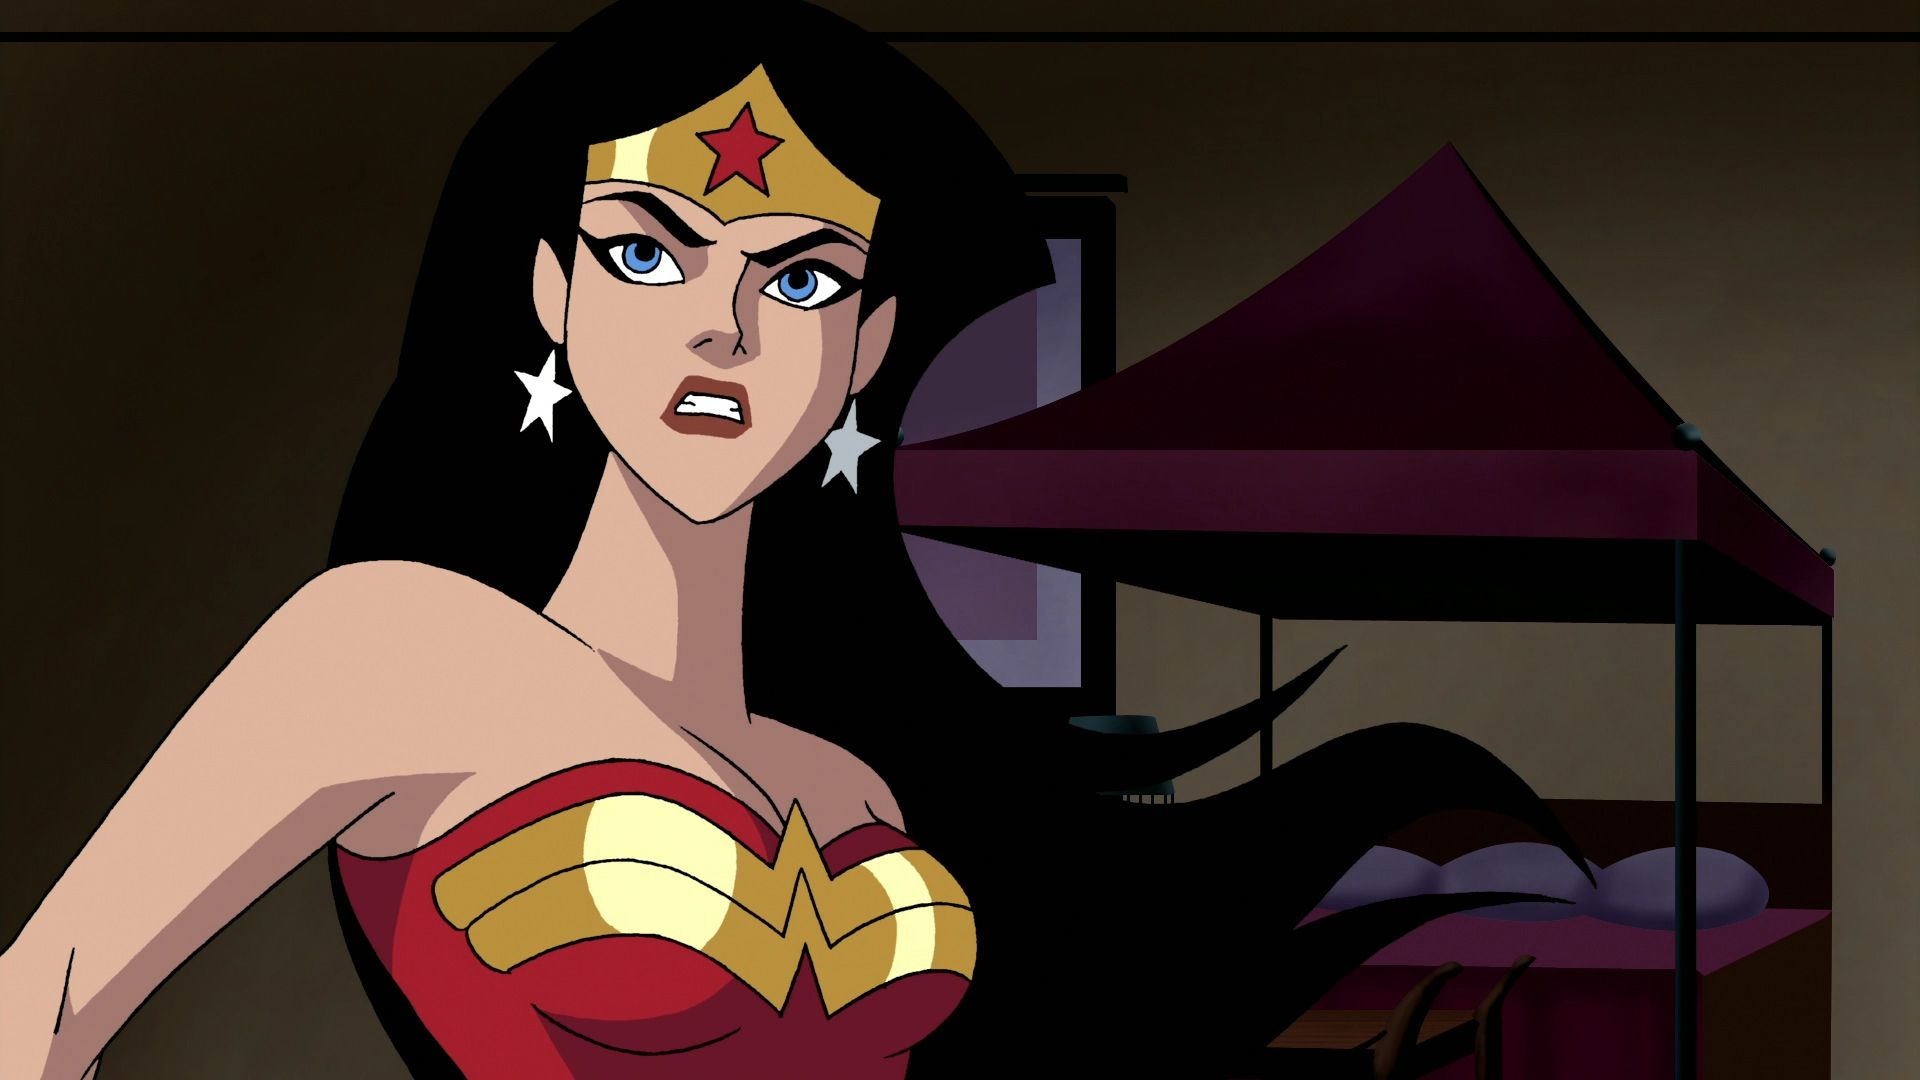 Wonder Woman Beaten Justice League Sleepy Comics -...